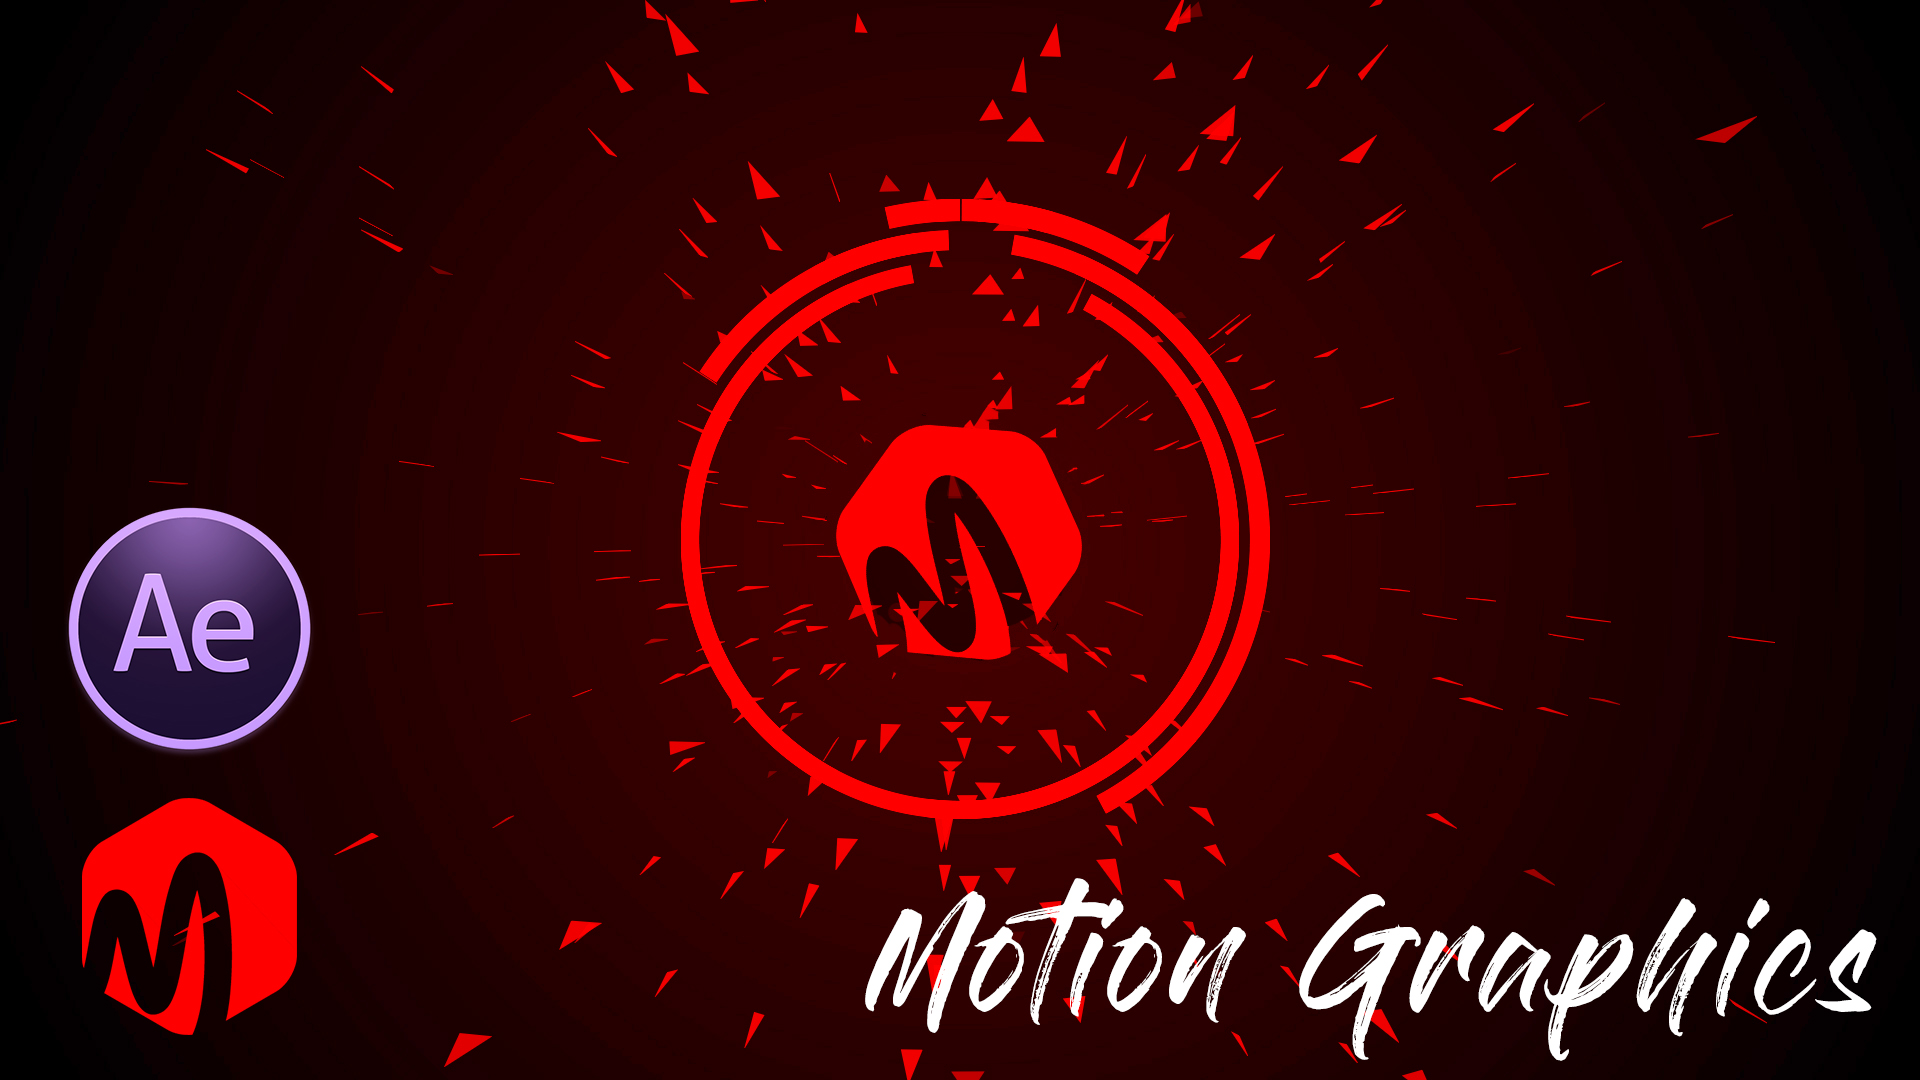 After Effects Motion Graphic Logo Animation